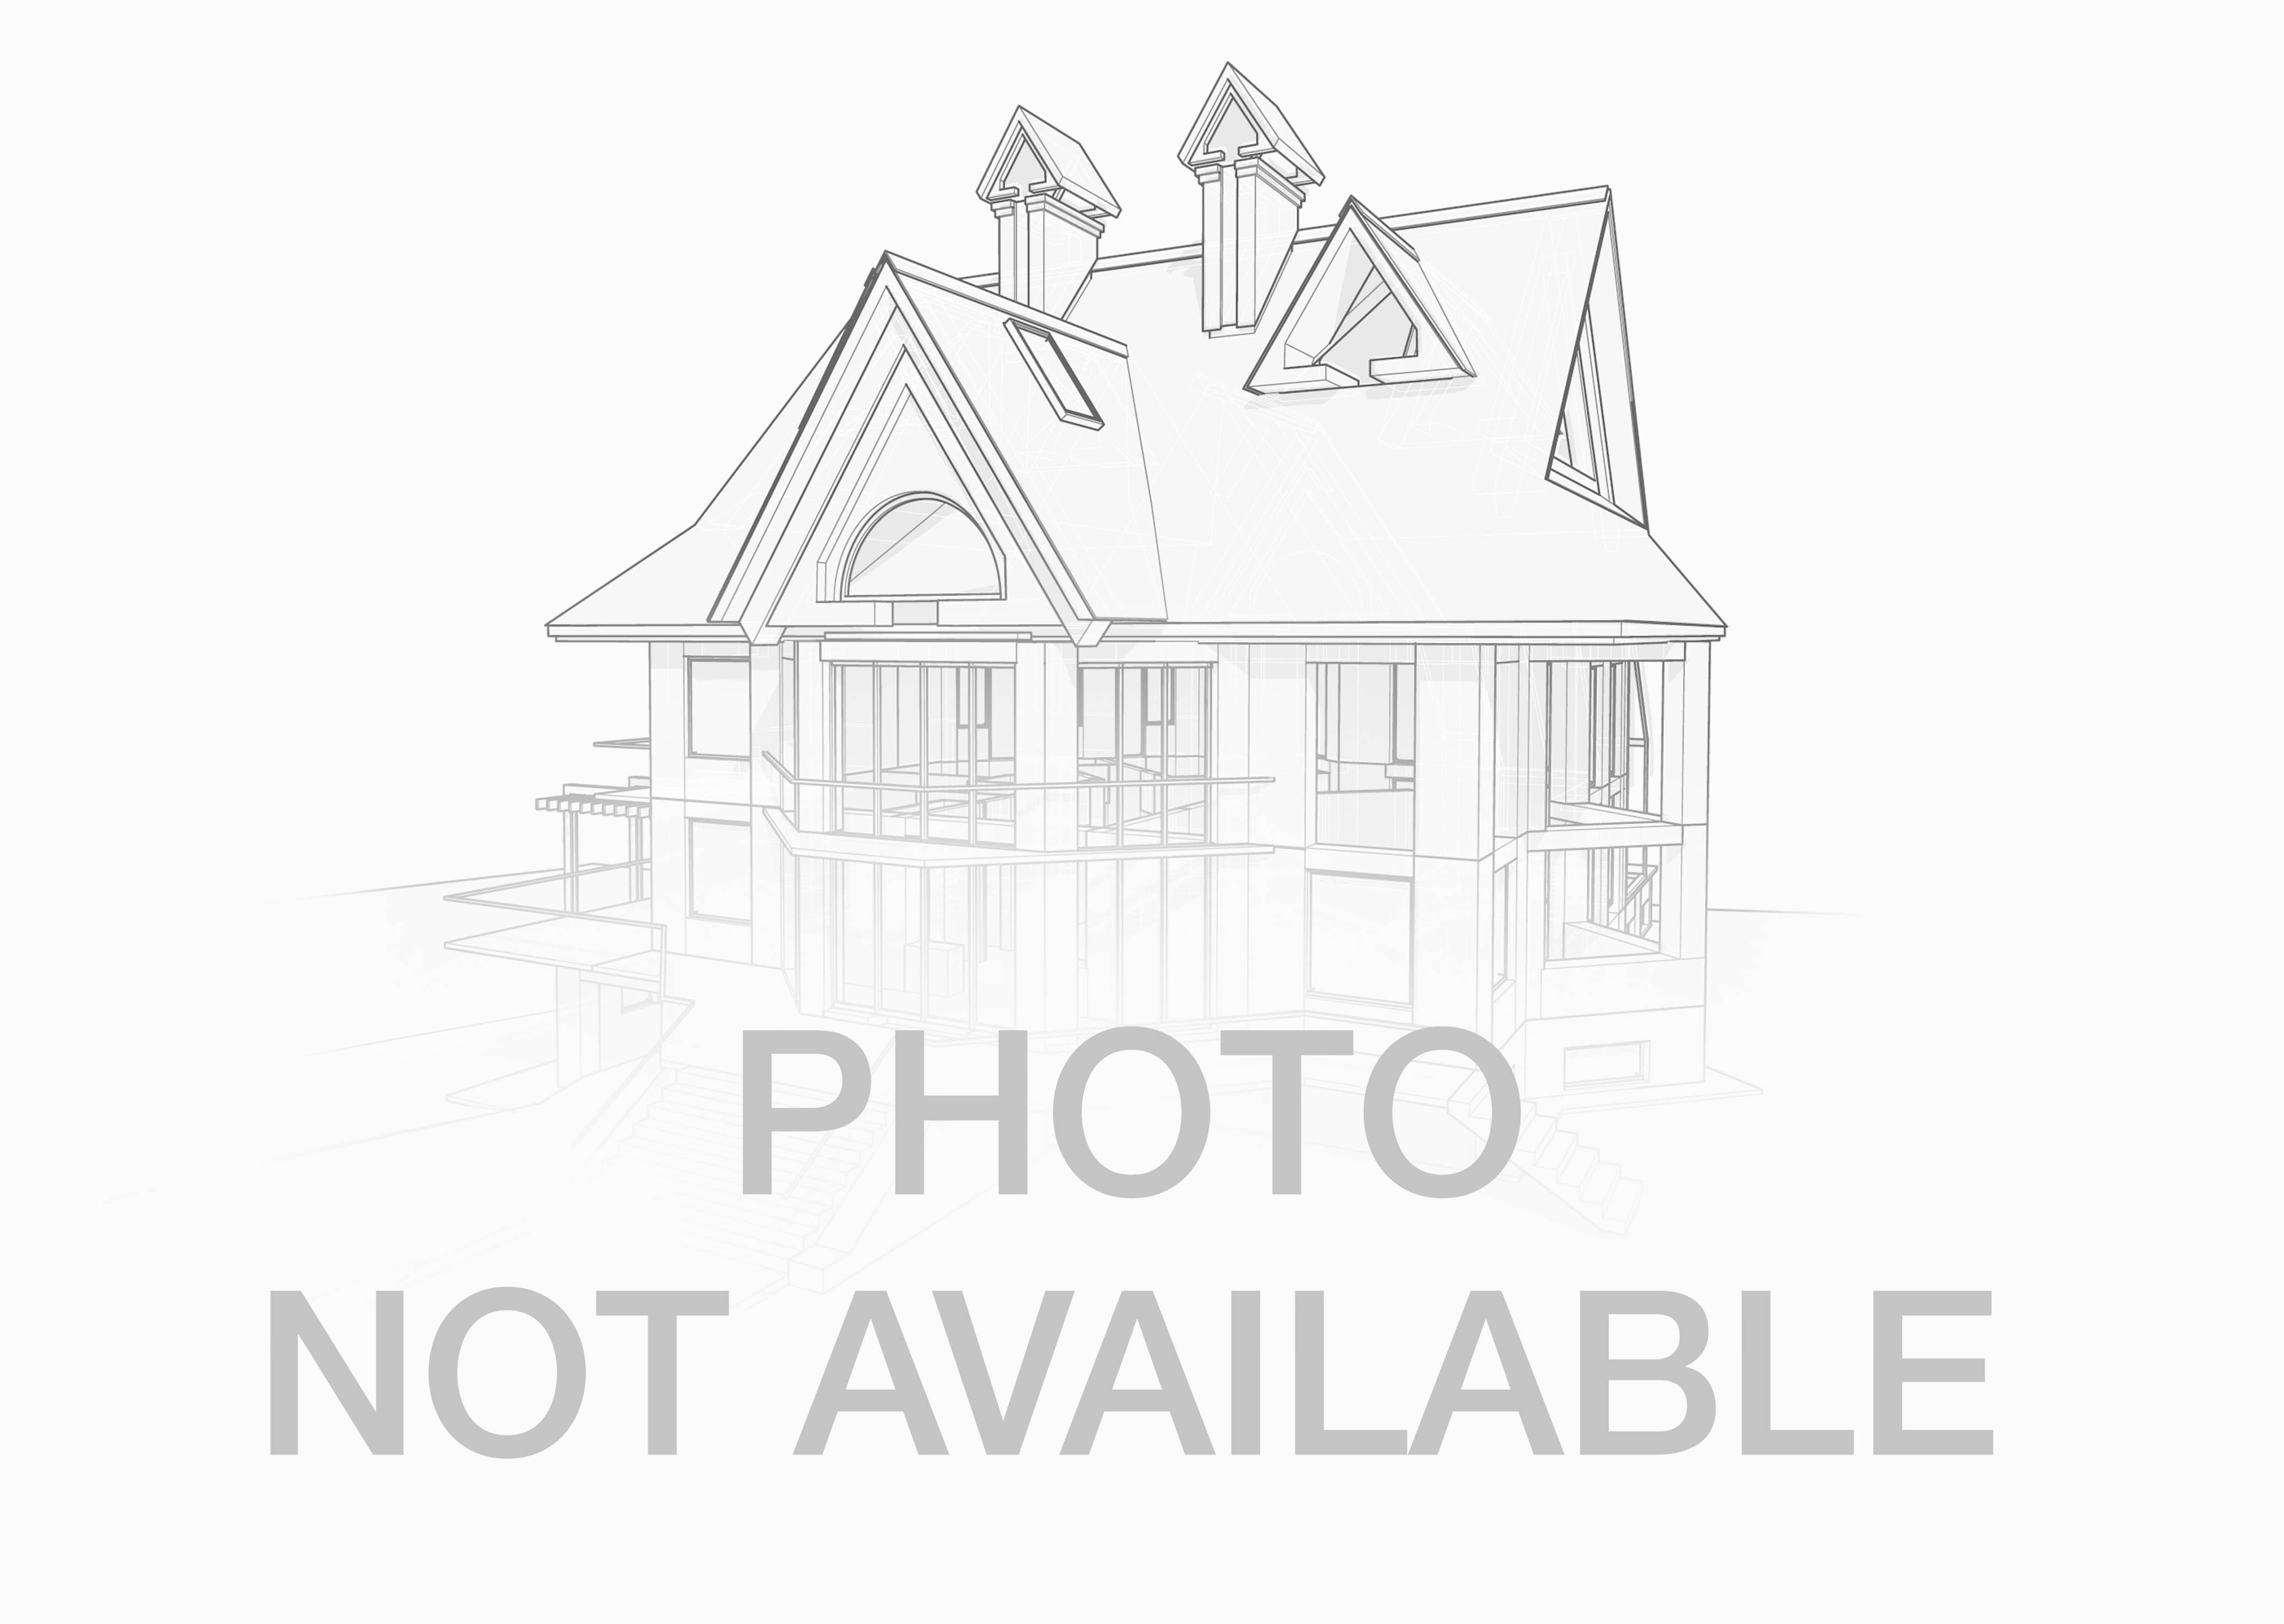 Hanover Pa Real Property Search